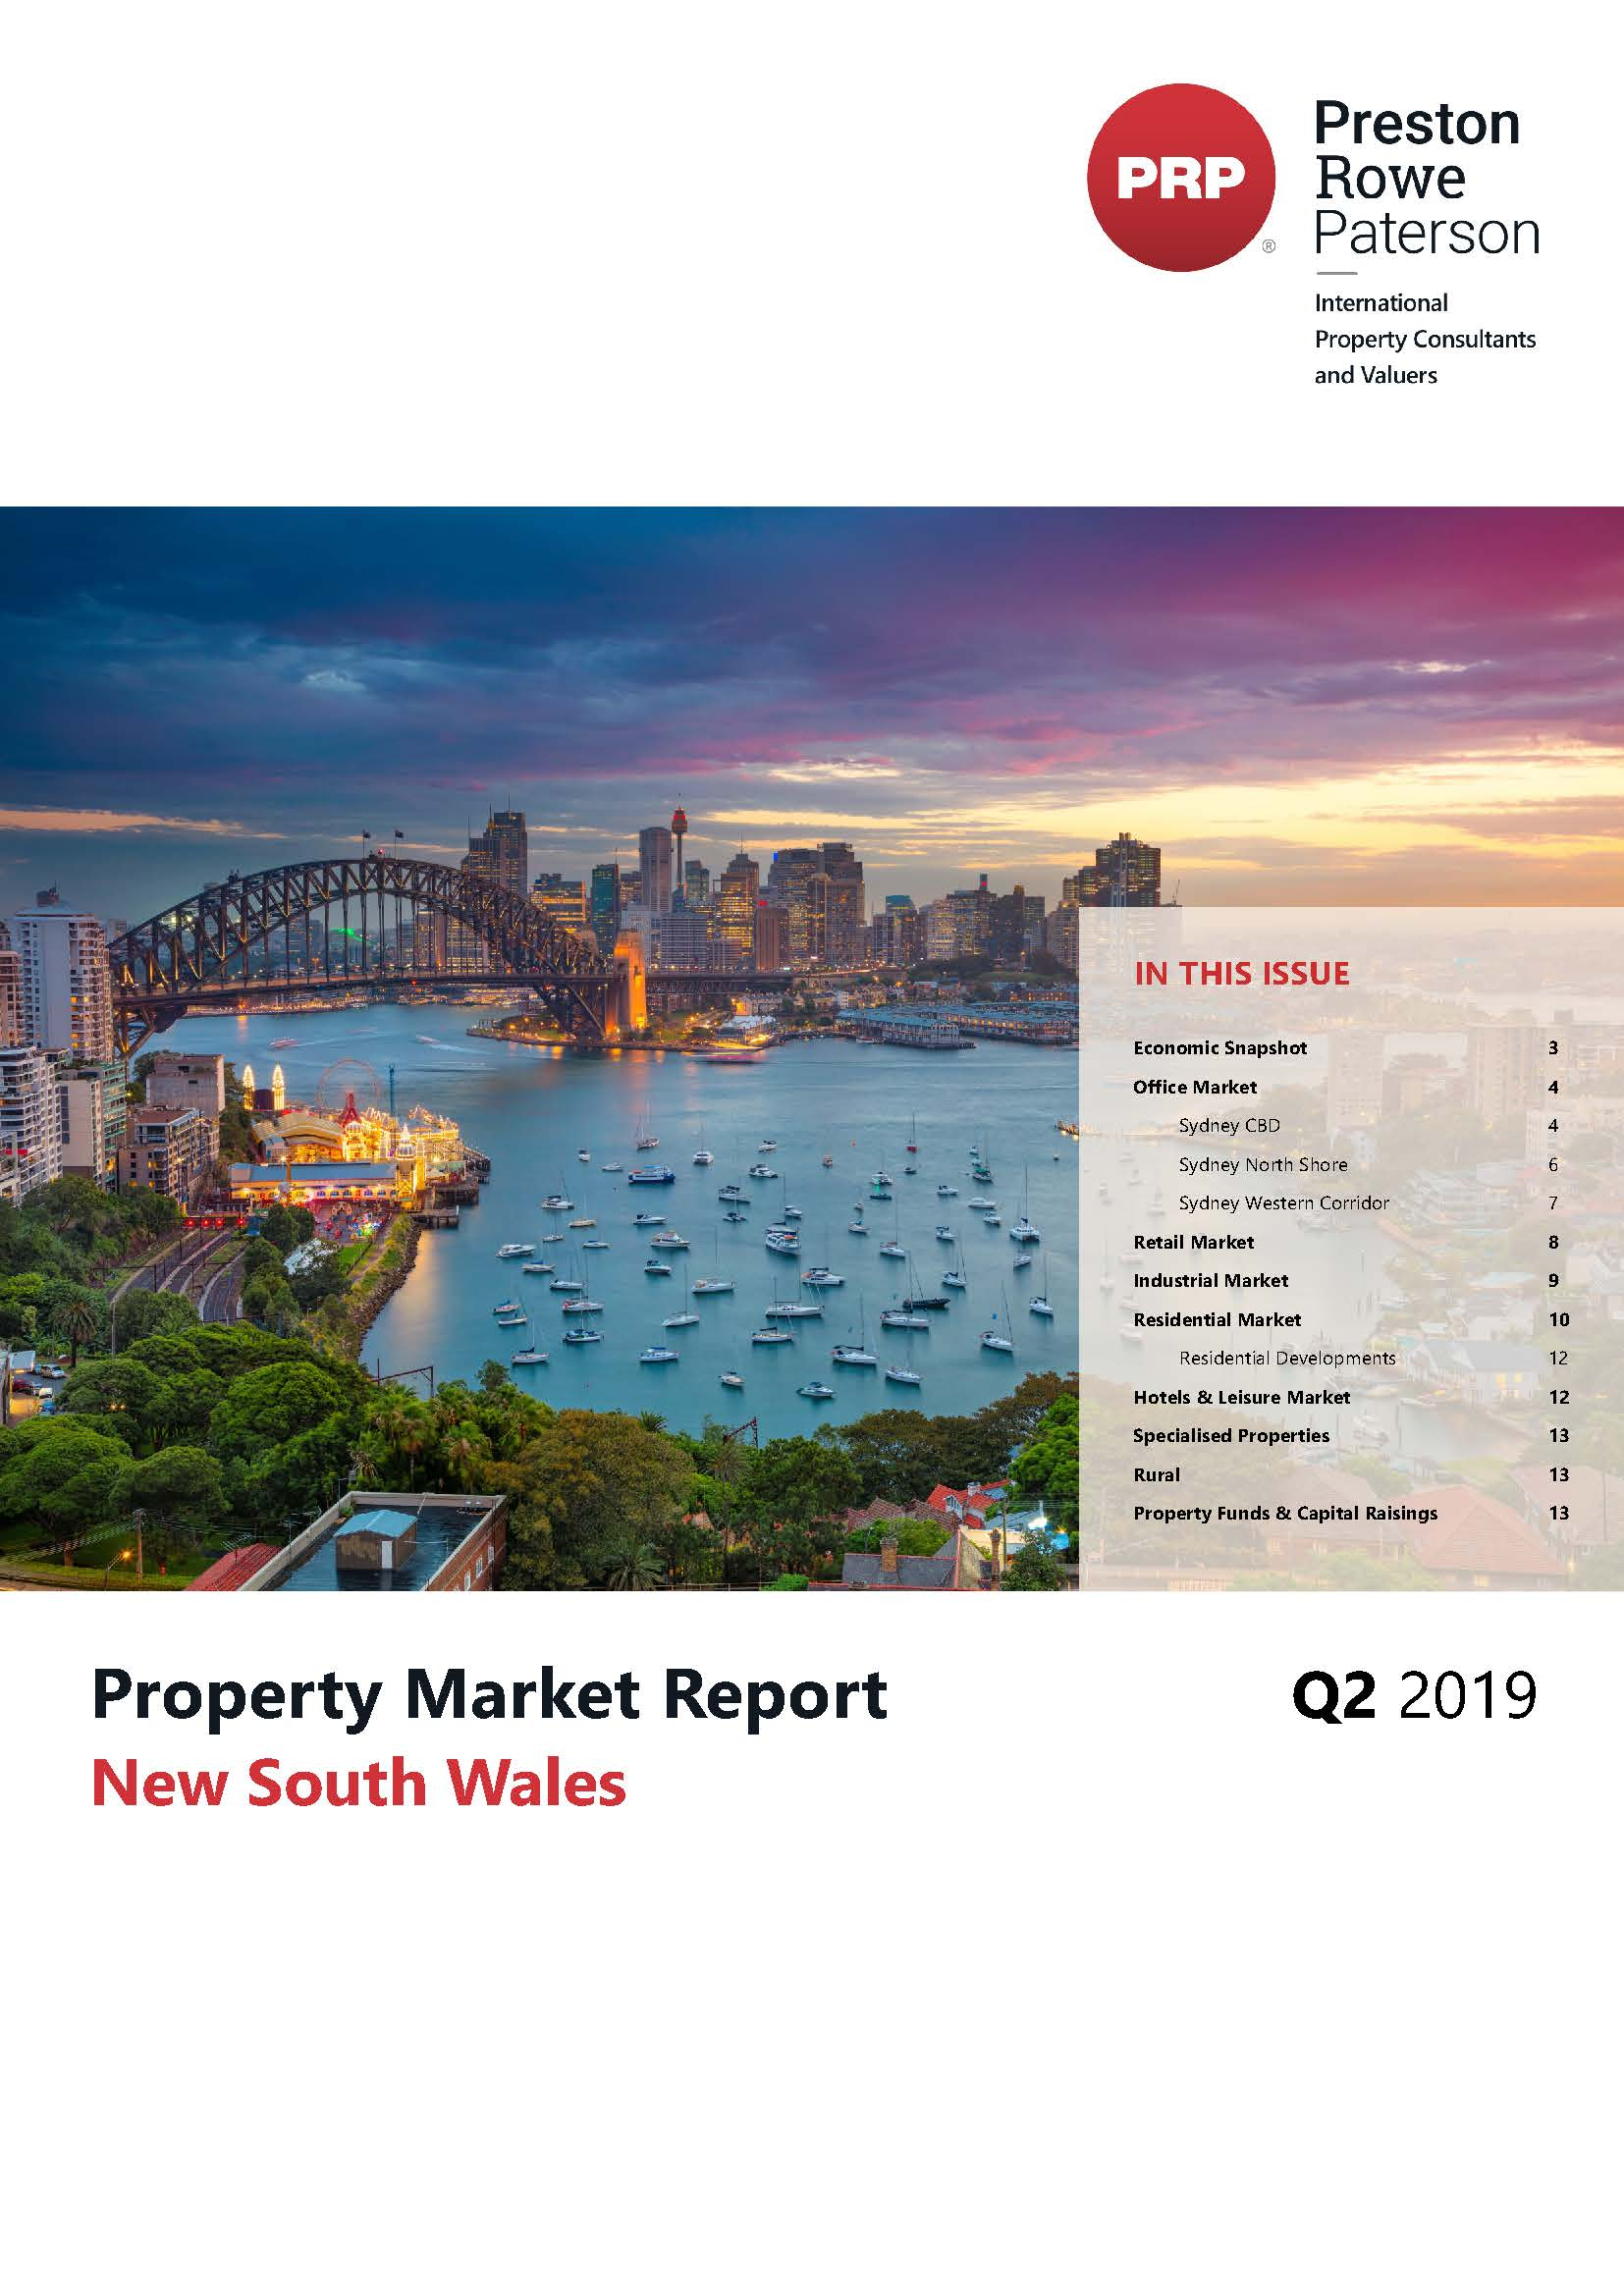 NSW Property Market Report Q2 2019